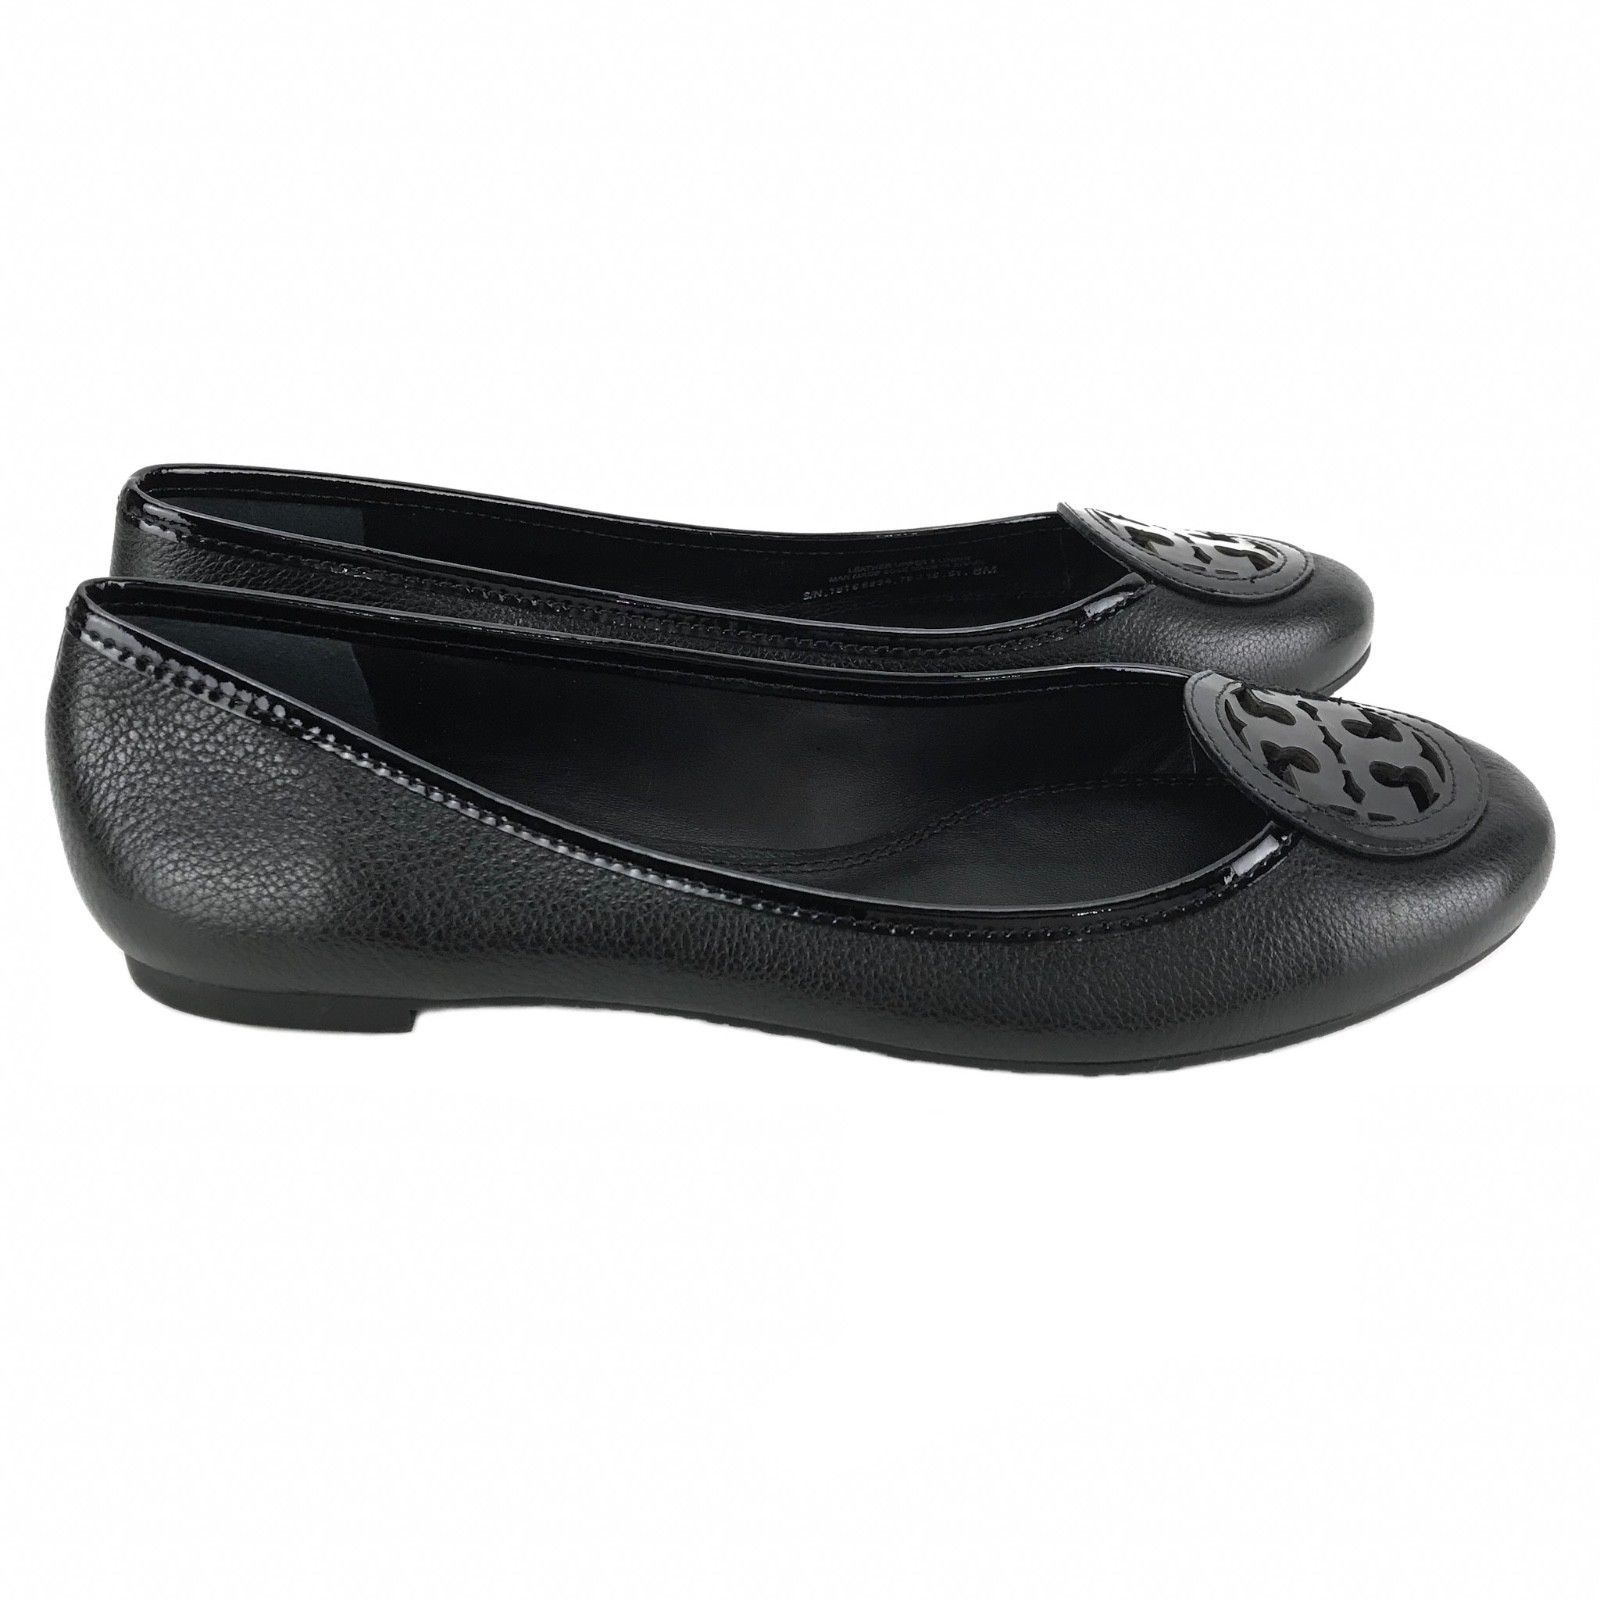 TORY BURCH Luisa Micro Tumbled Leather Ballet Flat